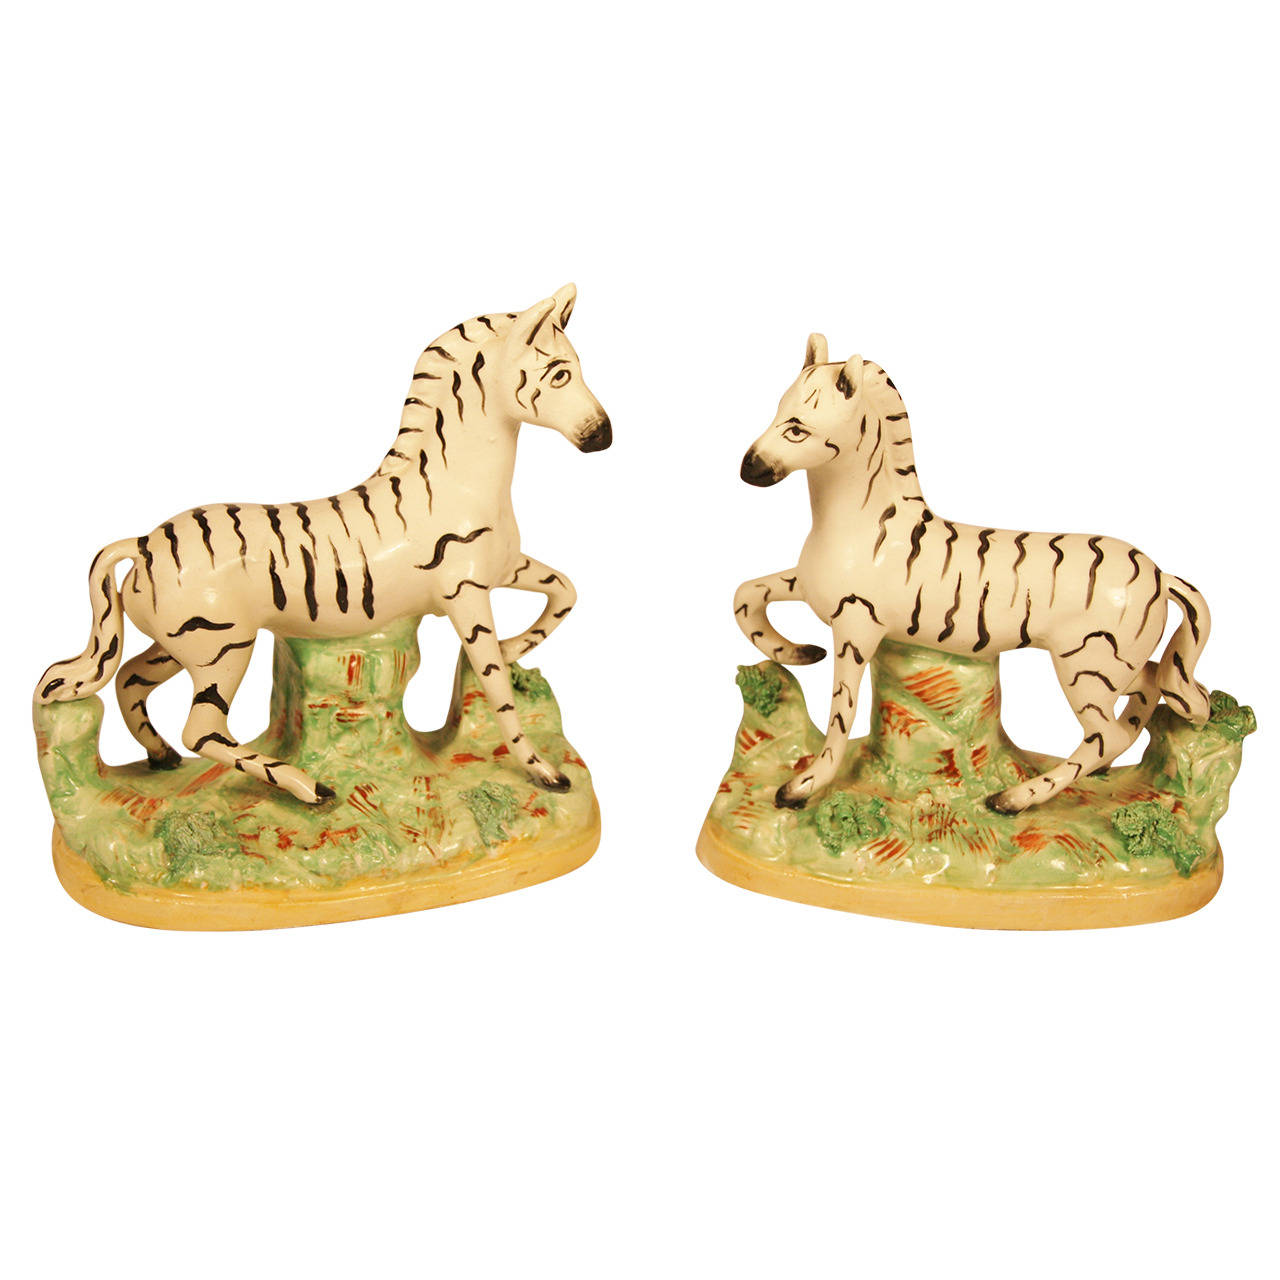 The 19th Century Zebra Staffordshire (I want these)